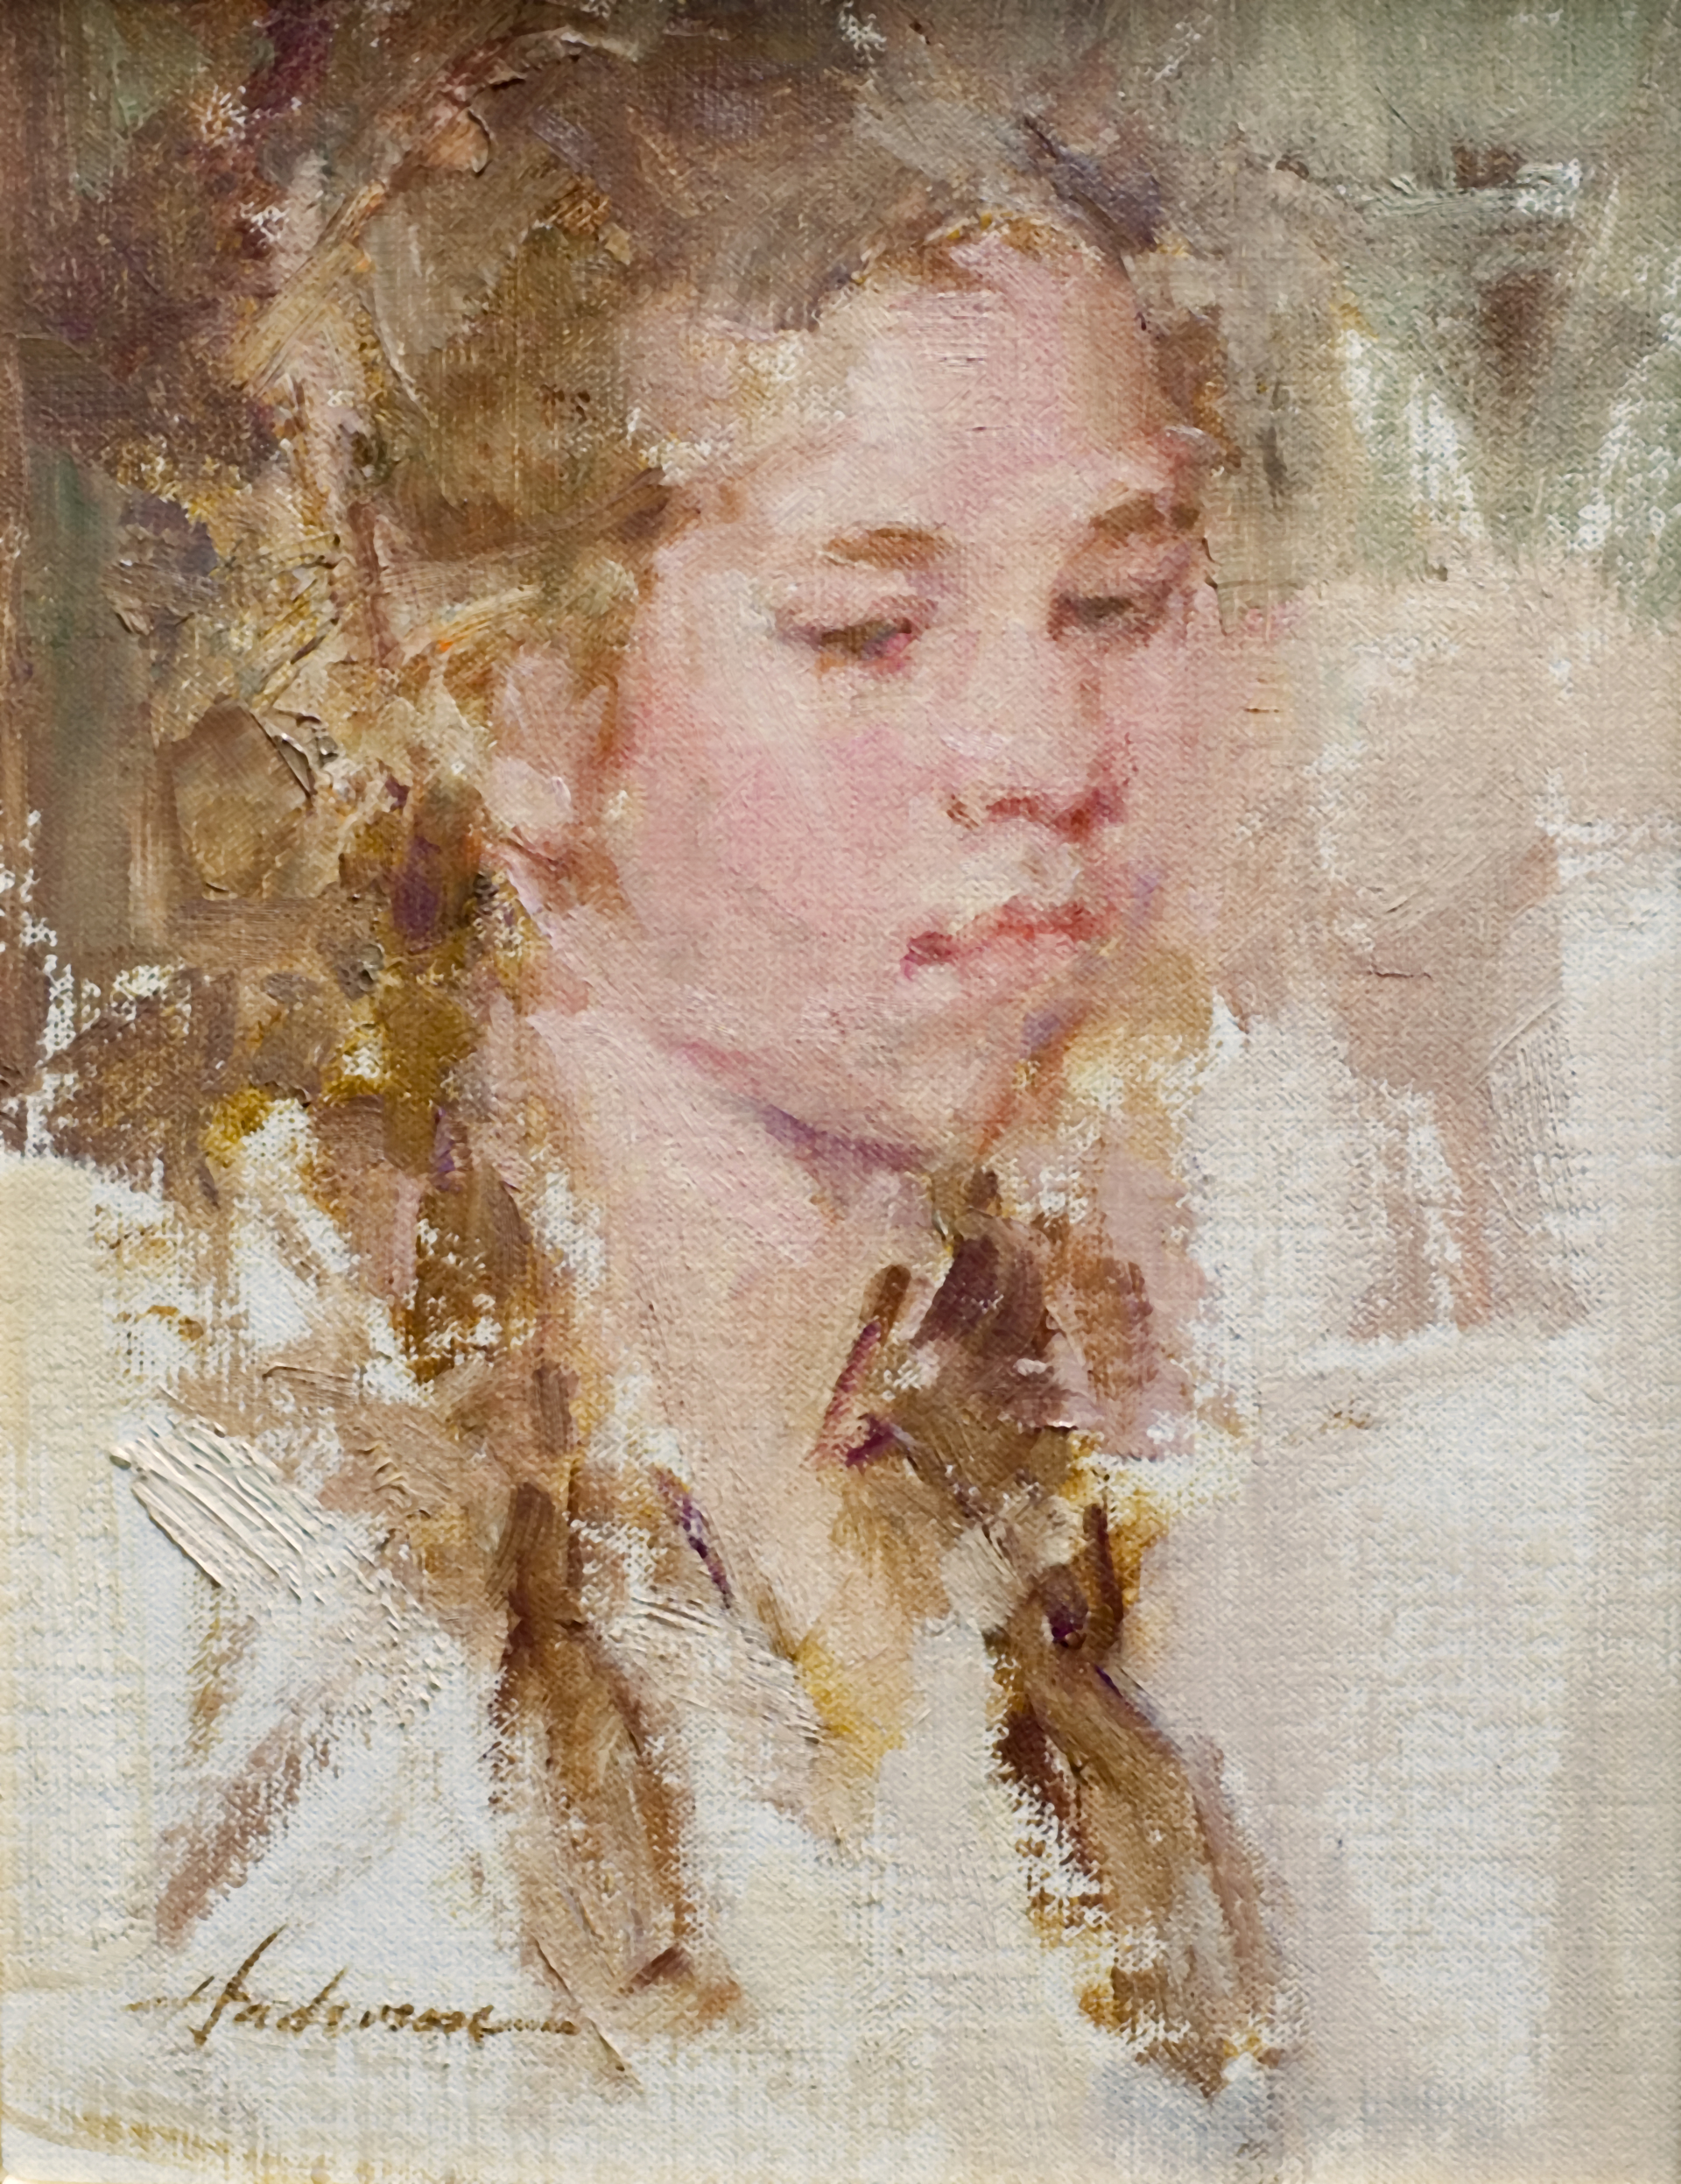 Young Girl with Braids by Carolyn Anderson